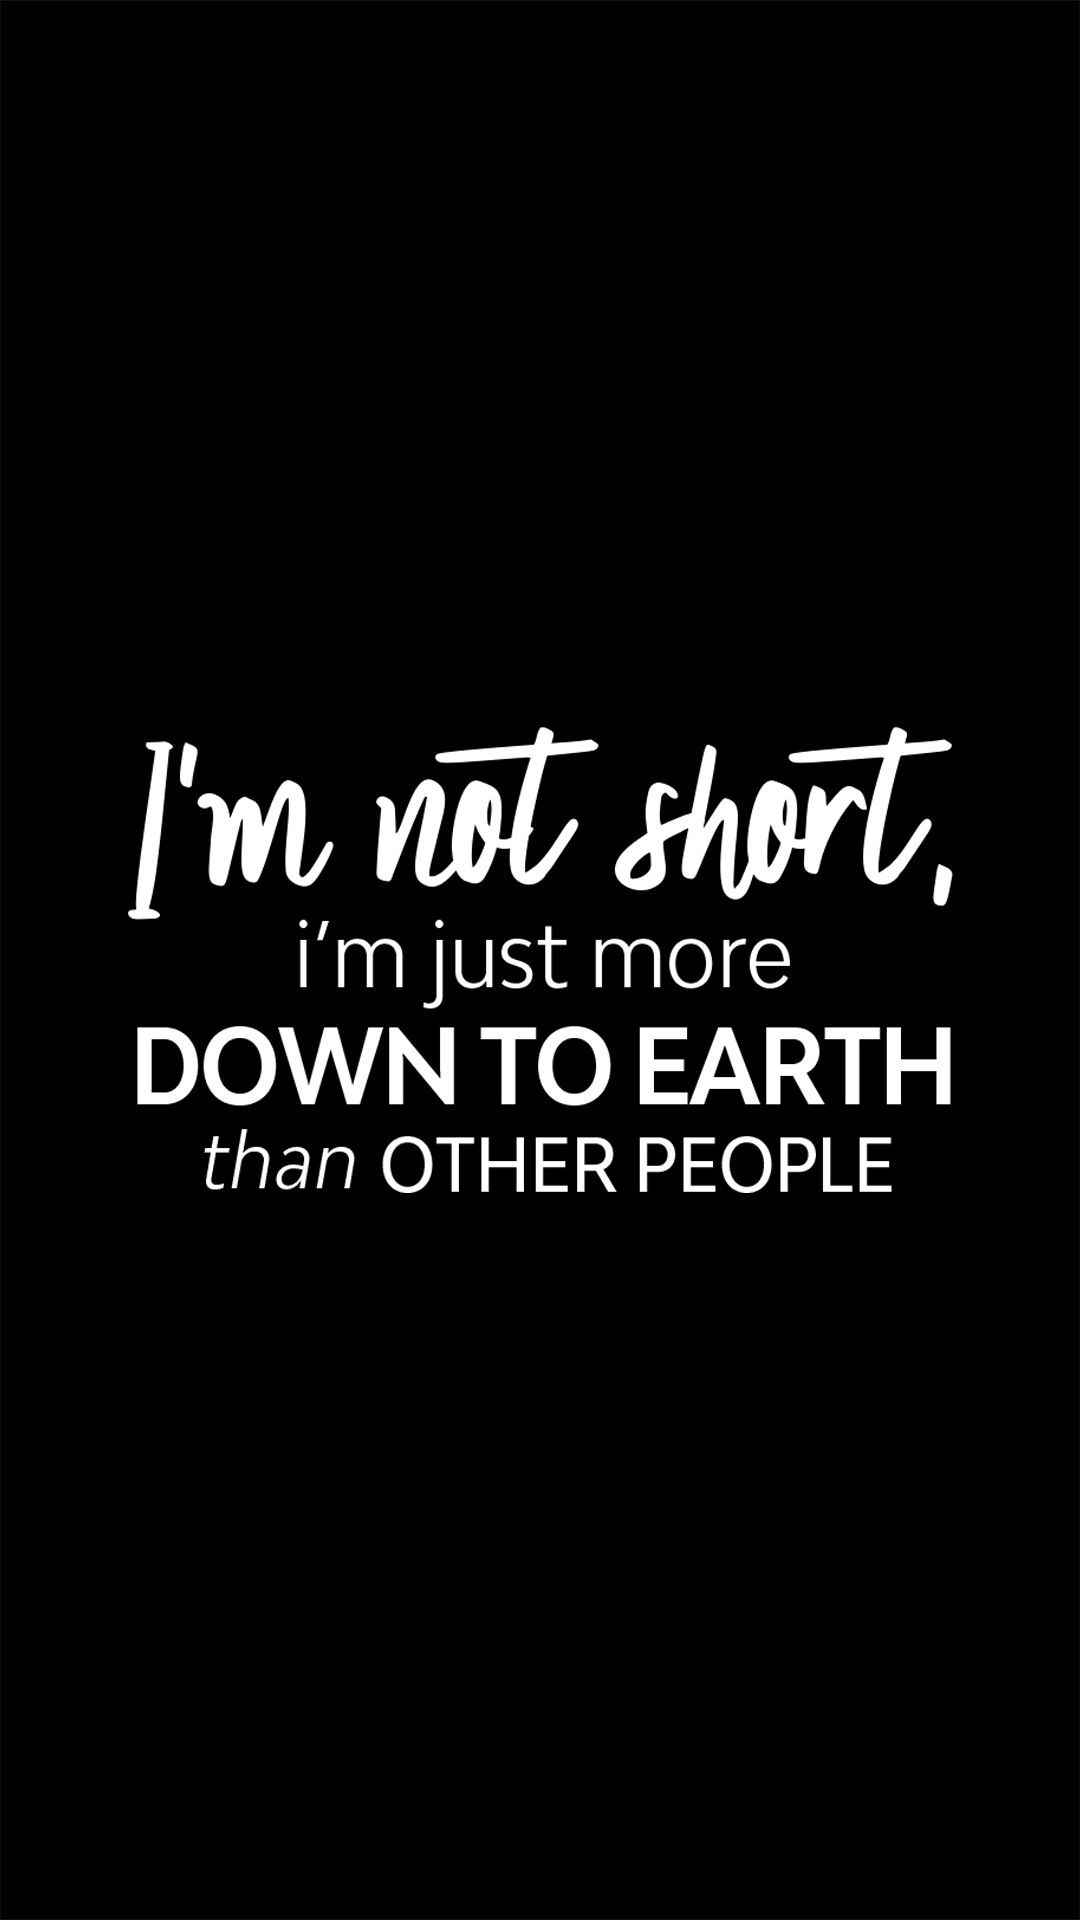 Quotes Sayings Funny Words Jokes Jokes Quotes Funny Quotes Ispirational Quotes